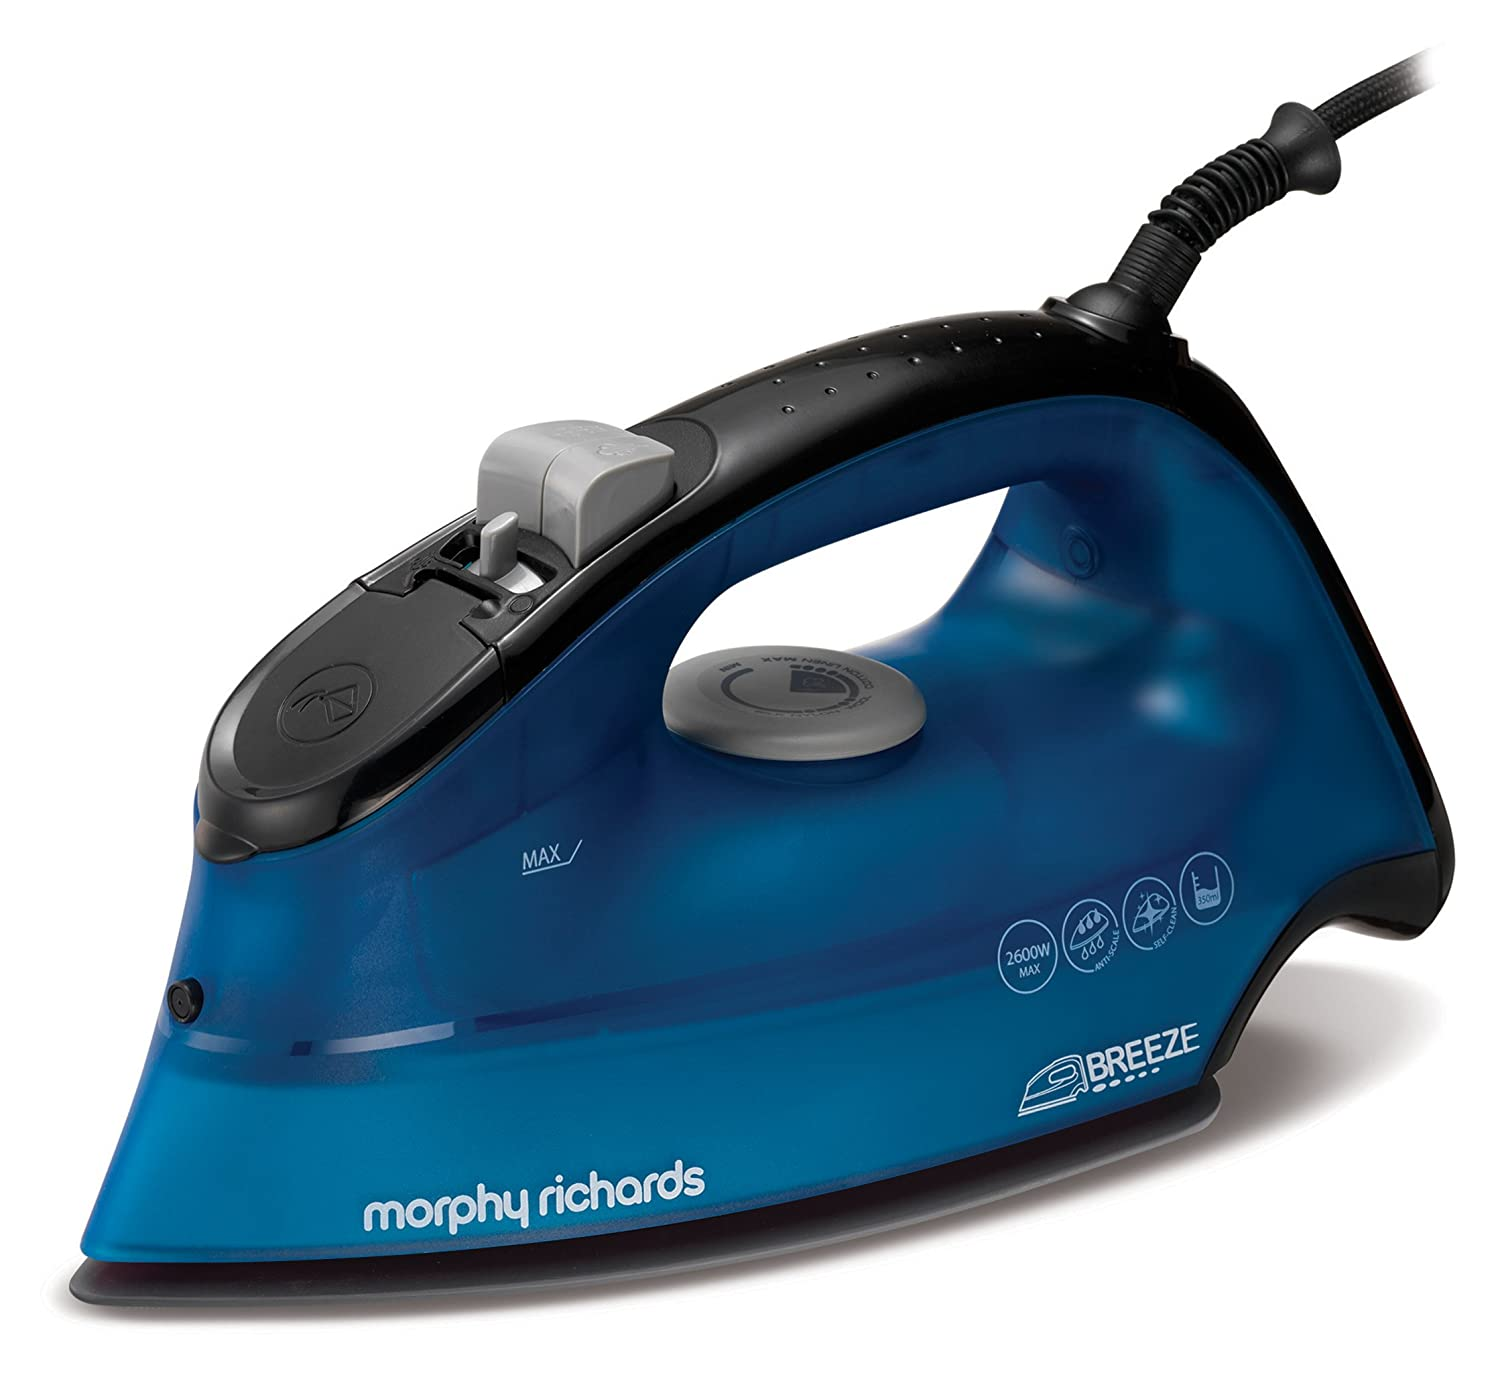 Morphy Richards 300273 Breeze Steam Iron, 2400 W, Blue/White [Energy Class A]